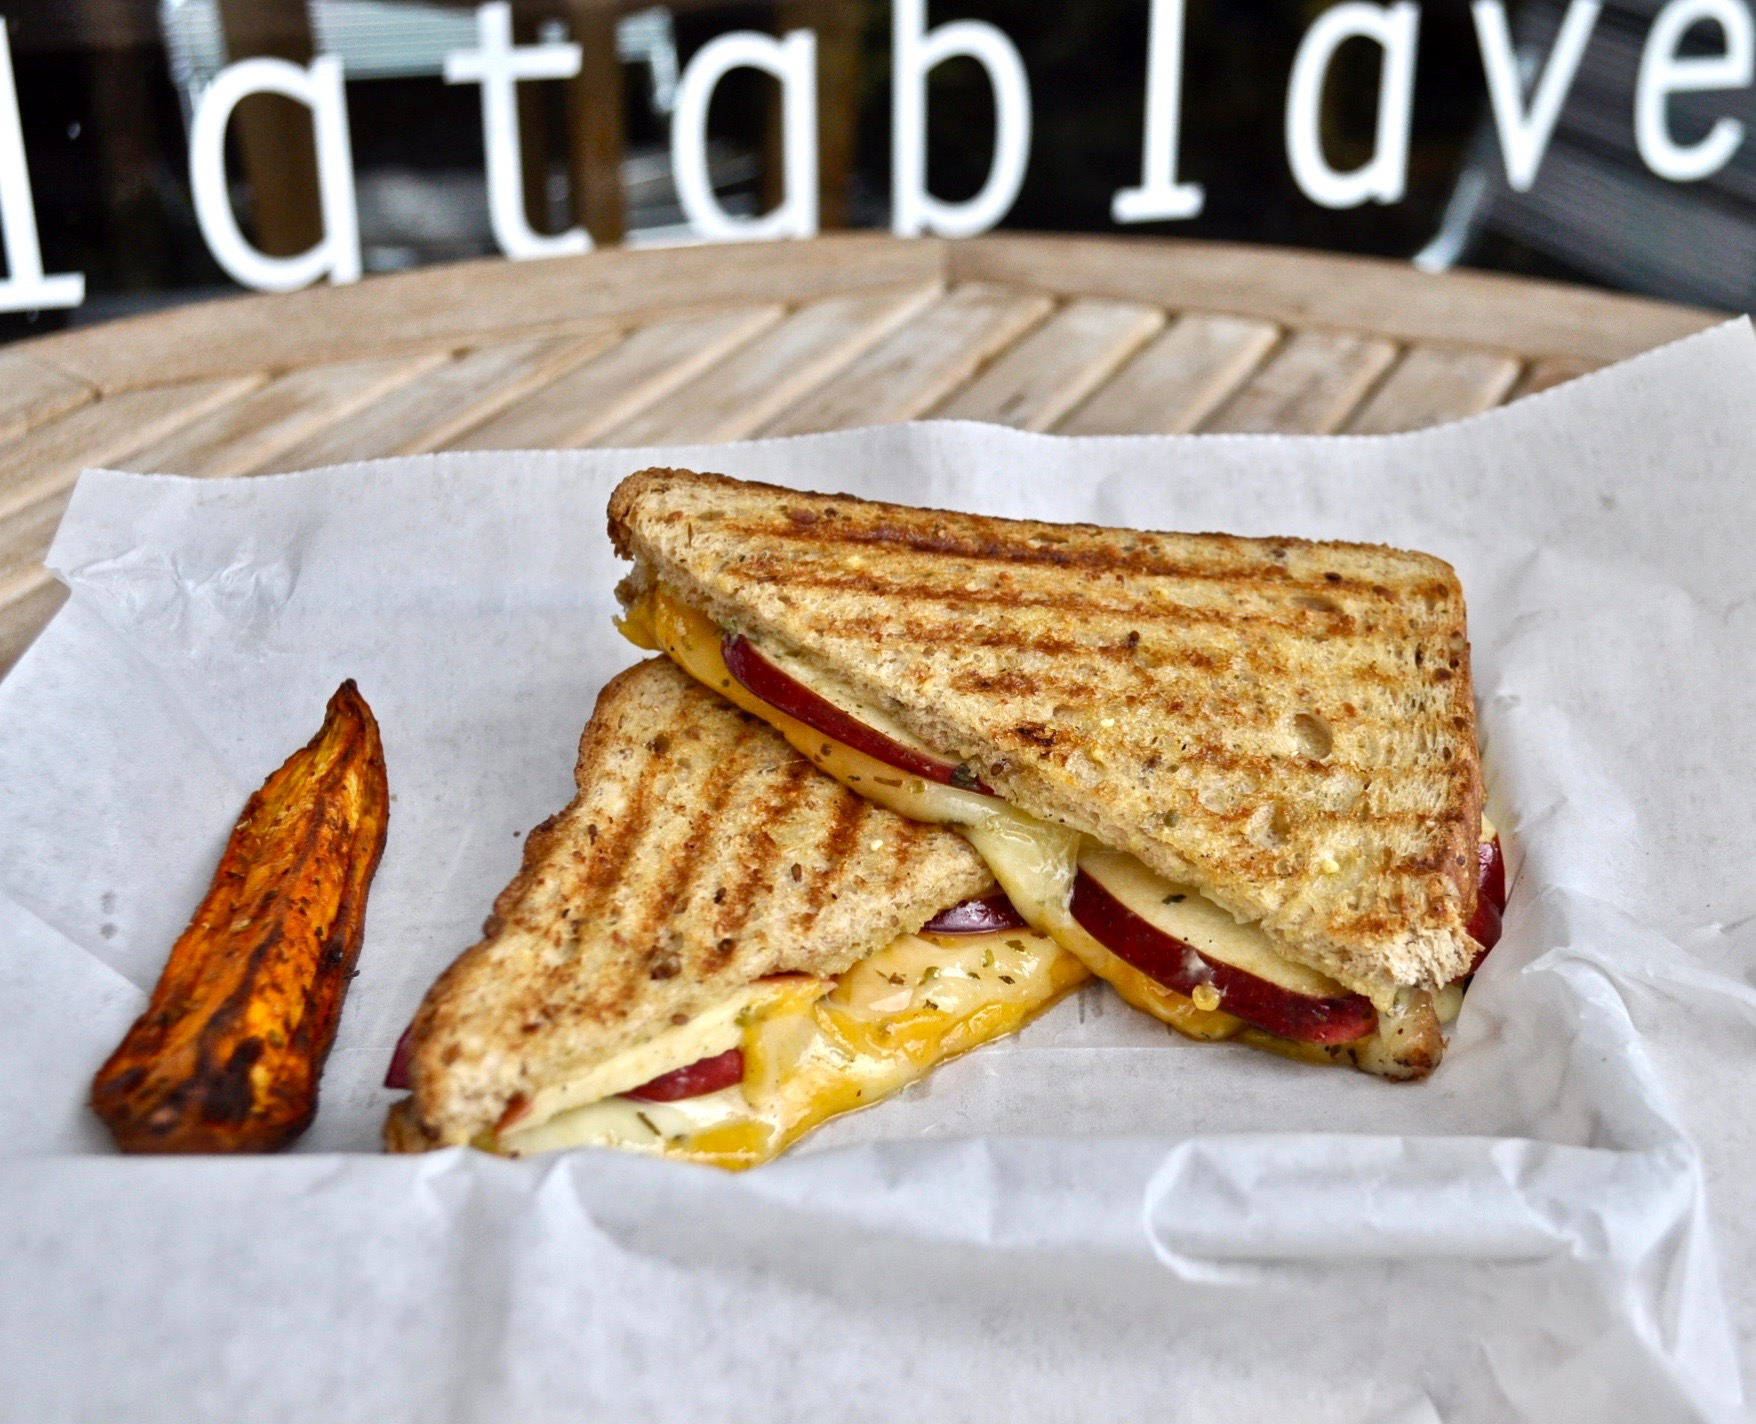 Grilled Cheese Trio with Apple Slice Image